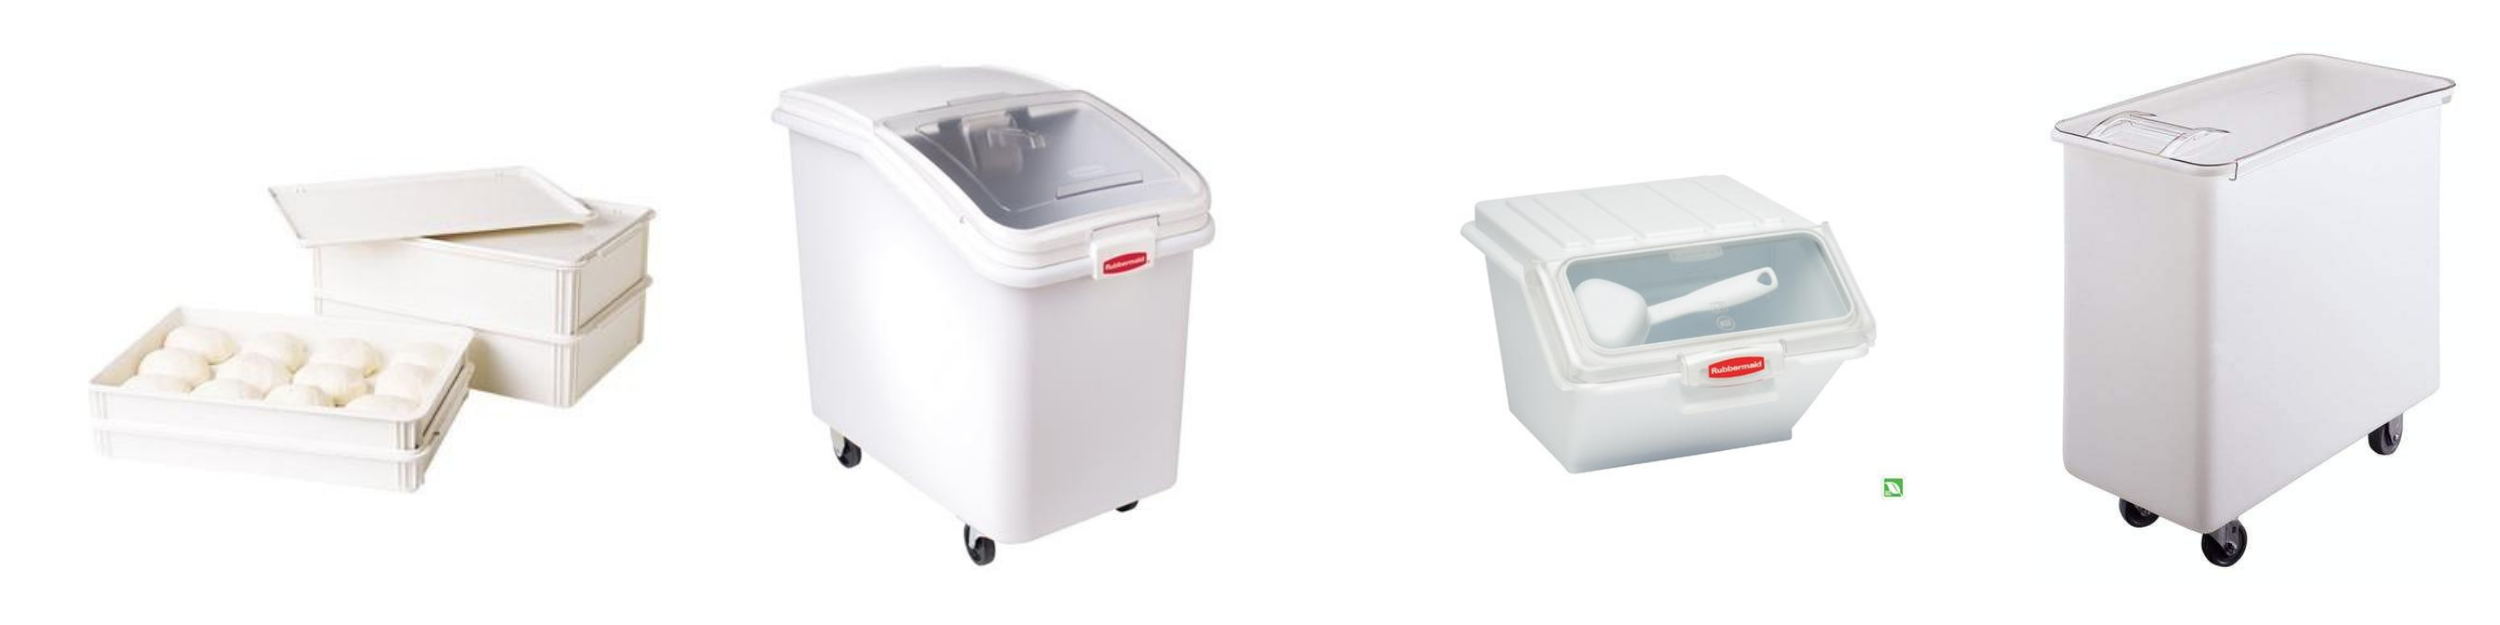 Dough boxes and ingredients bins